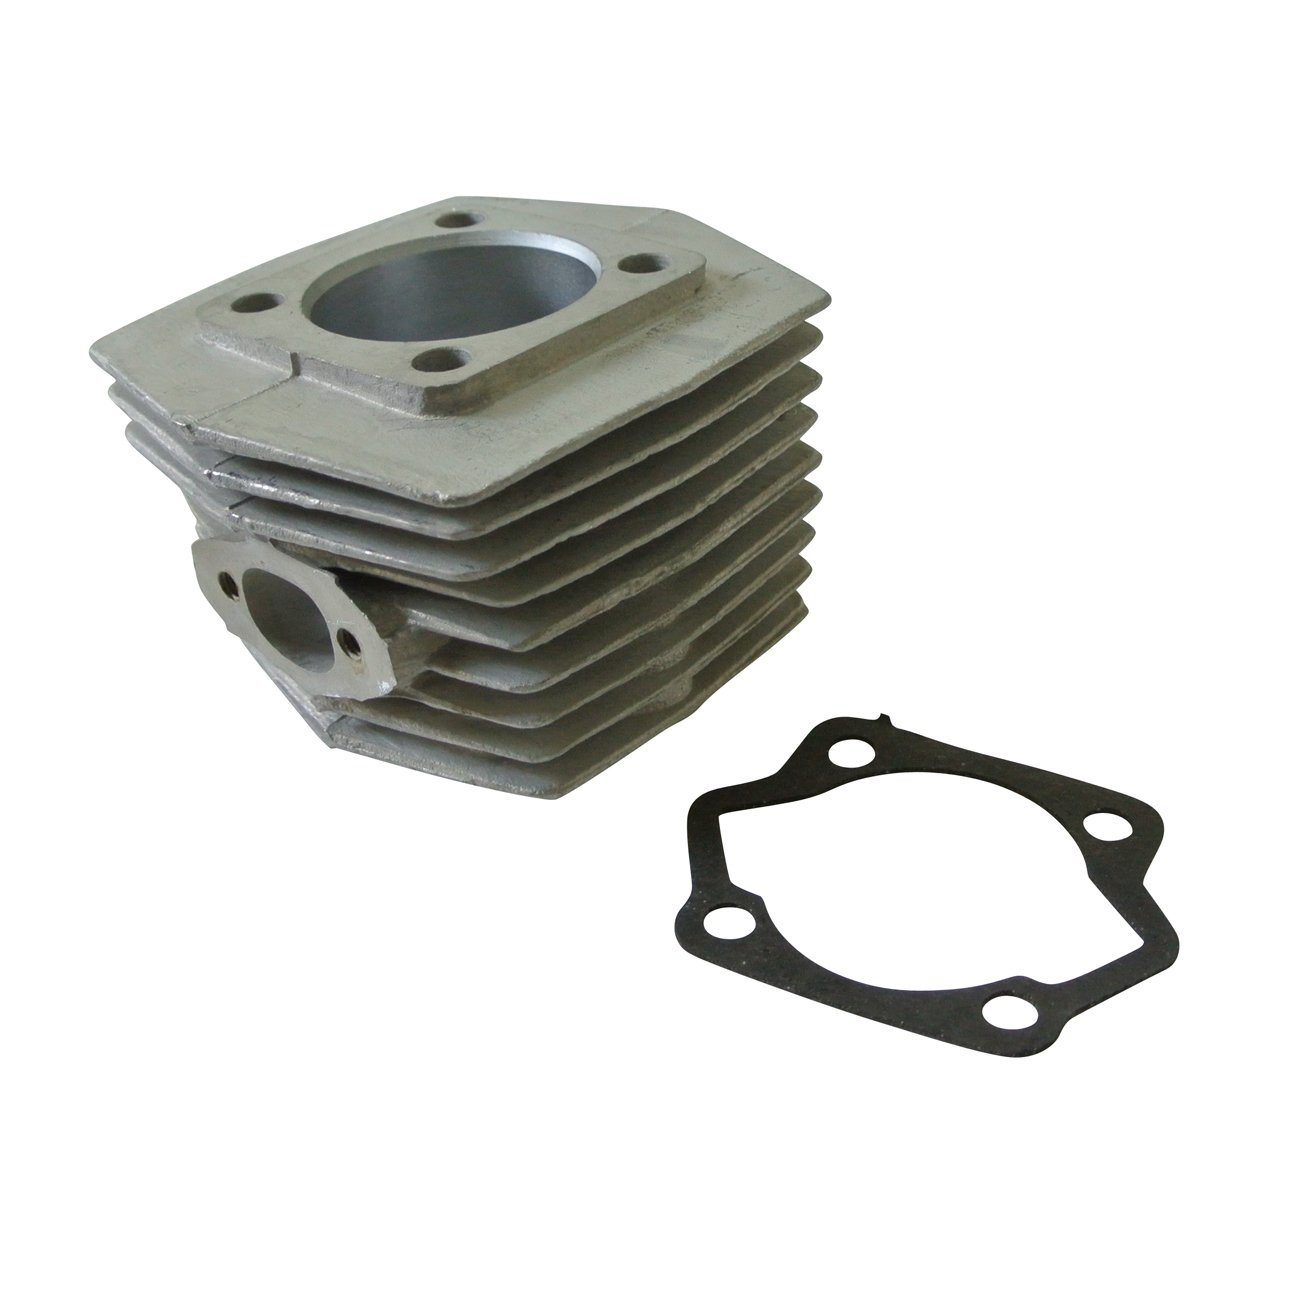 JRL 47mm Engine Barrel Cylinder Bore Fit 66cc 80cc 2 Stroke Motorised Motorized Bicycle